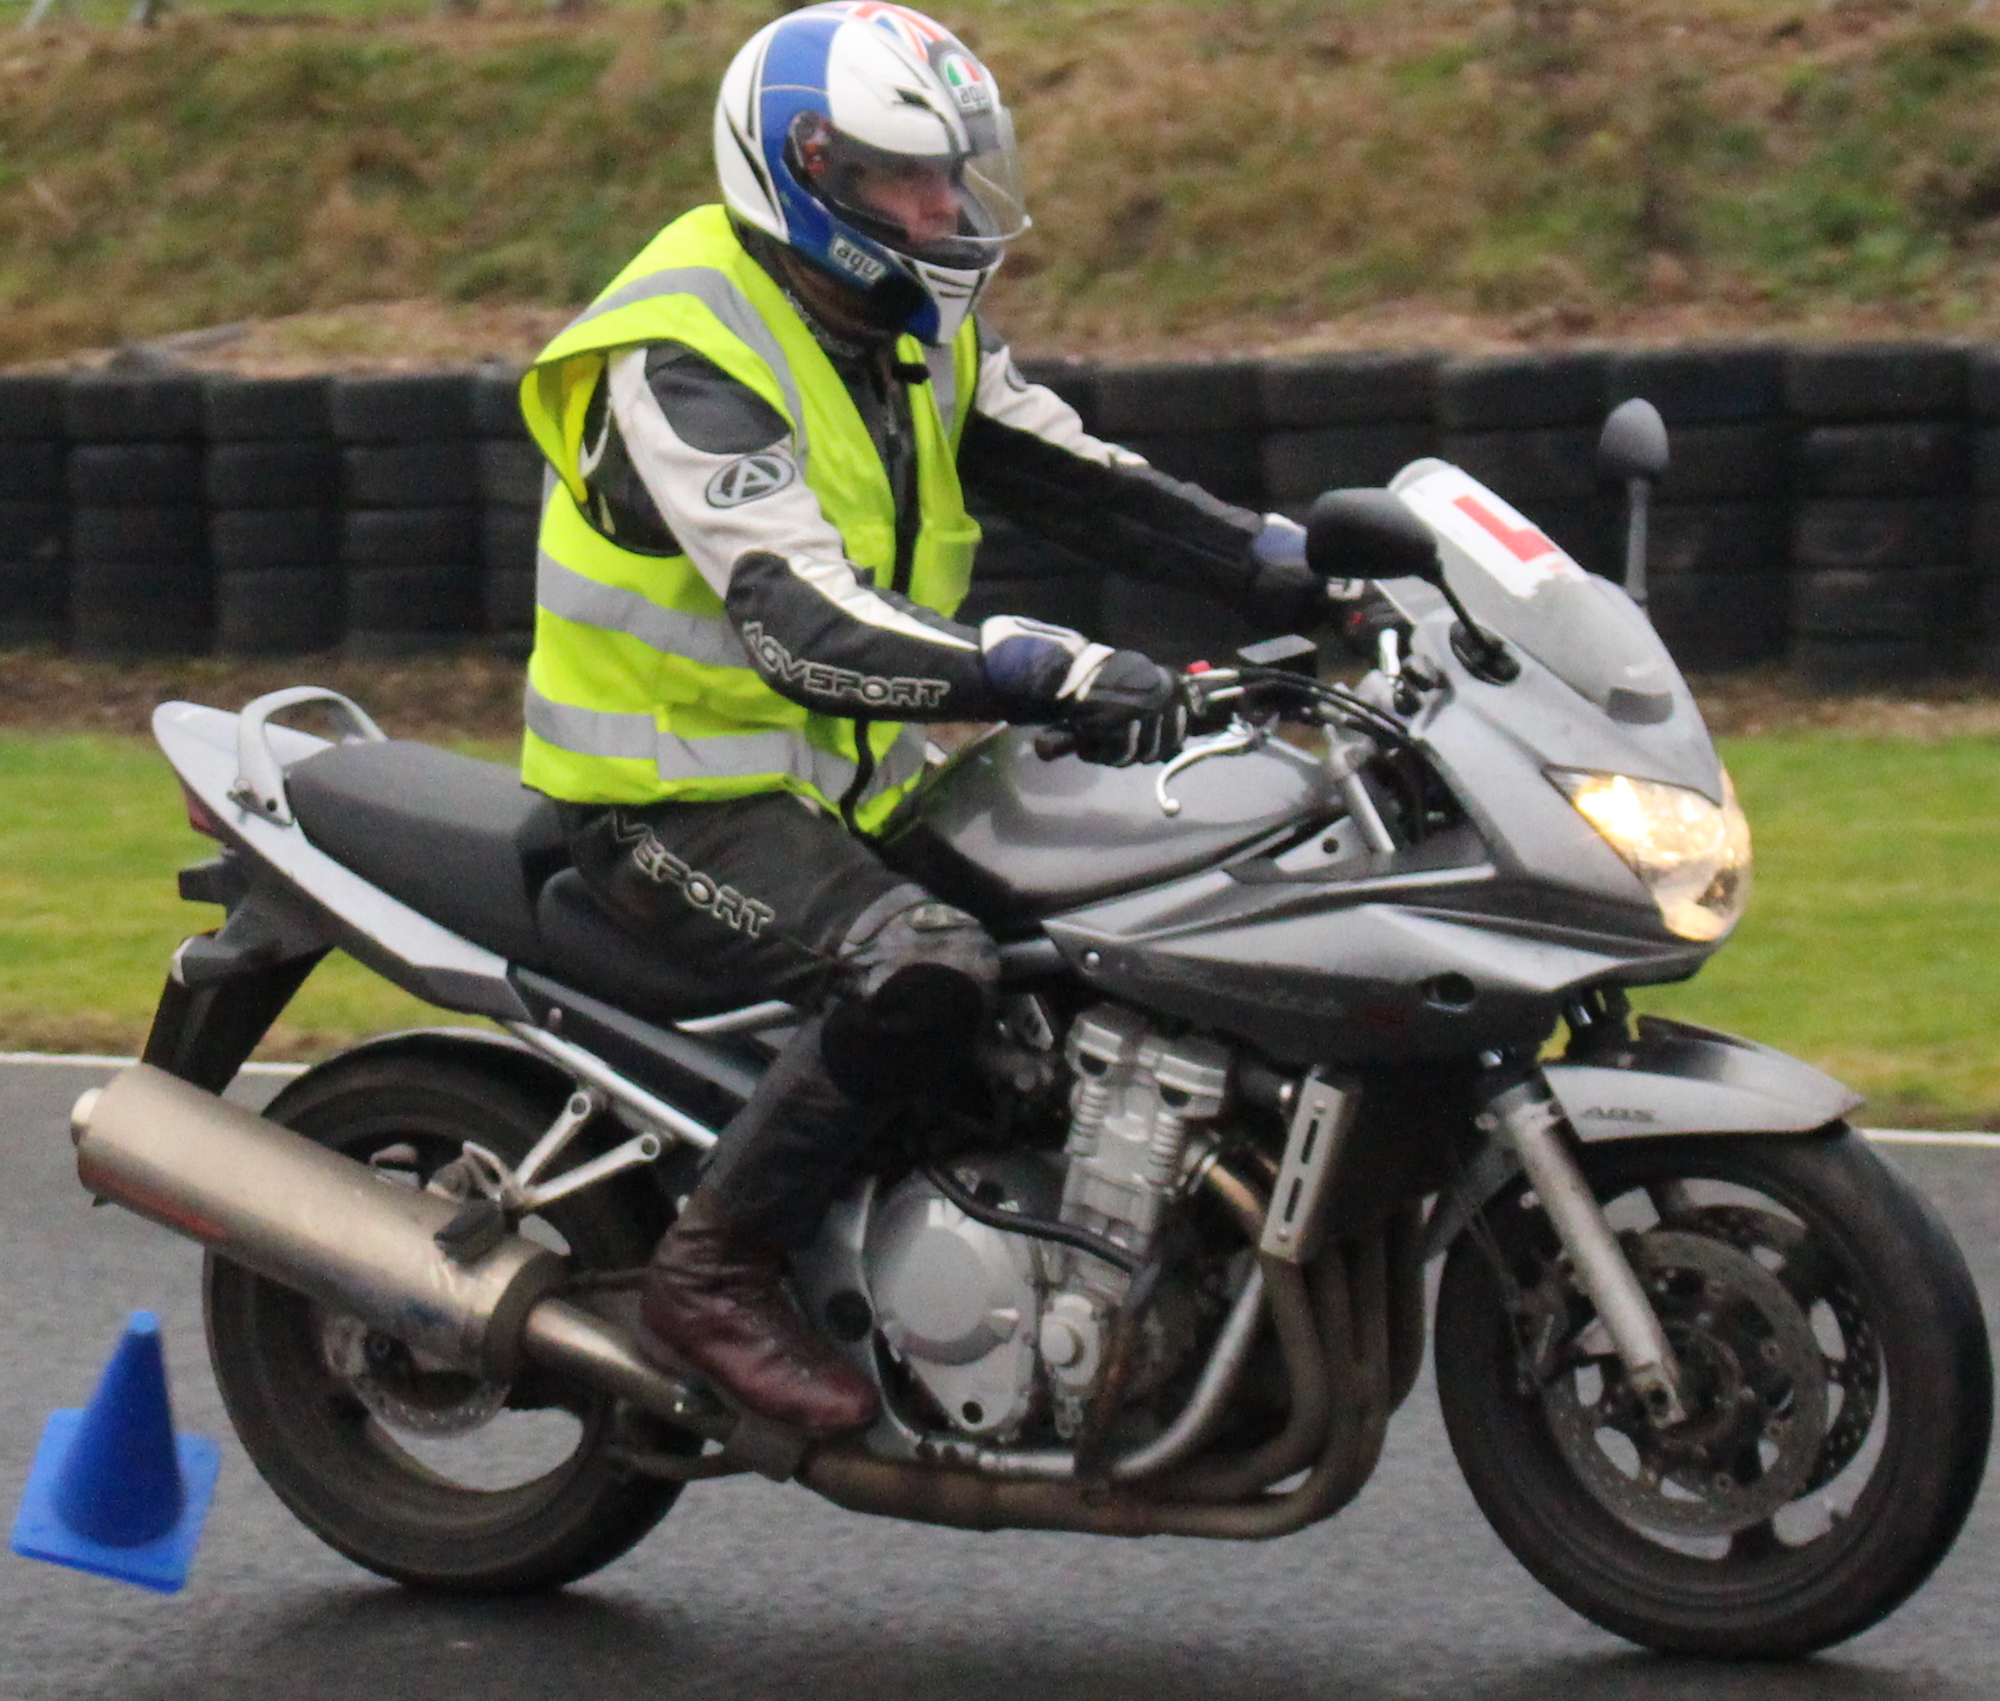 Motorcycle test Shires